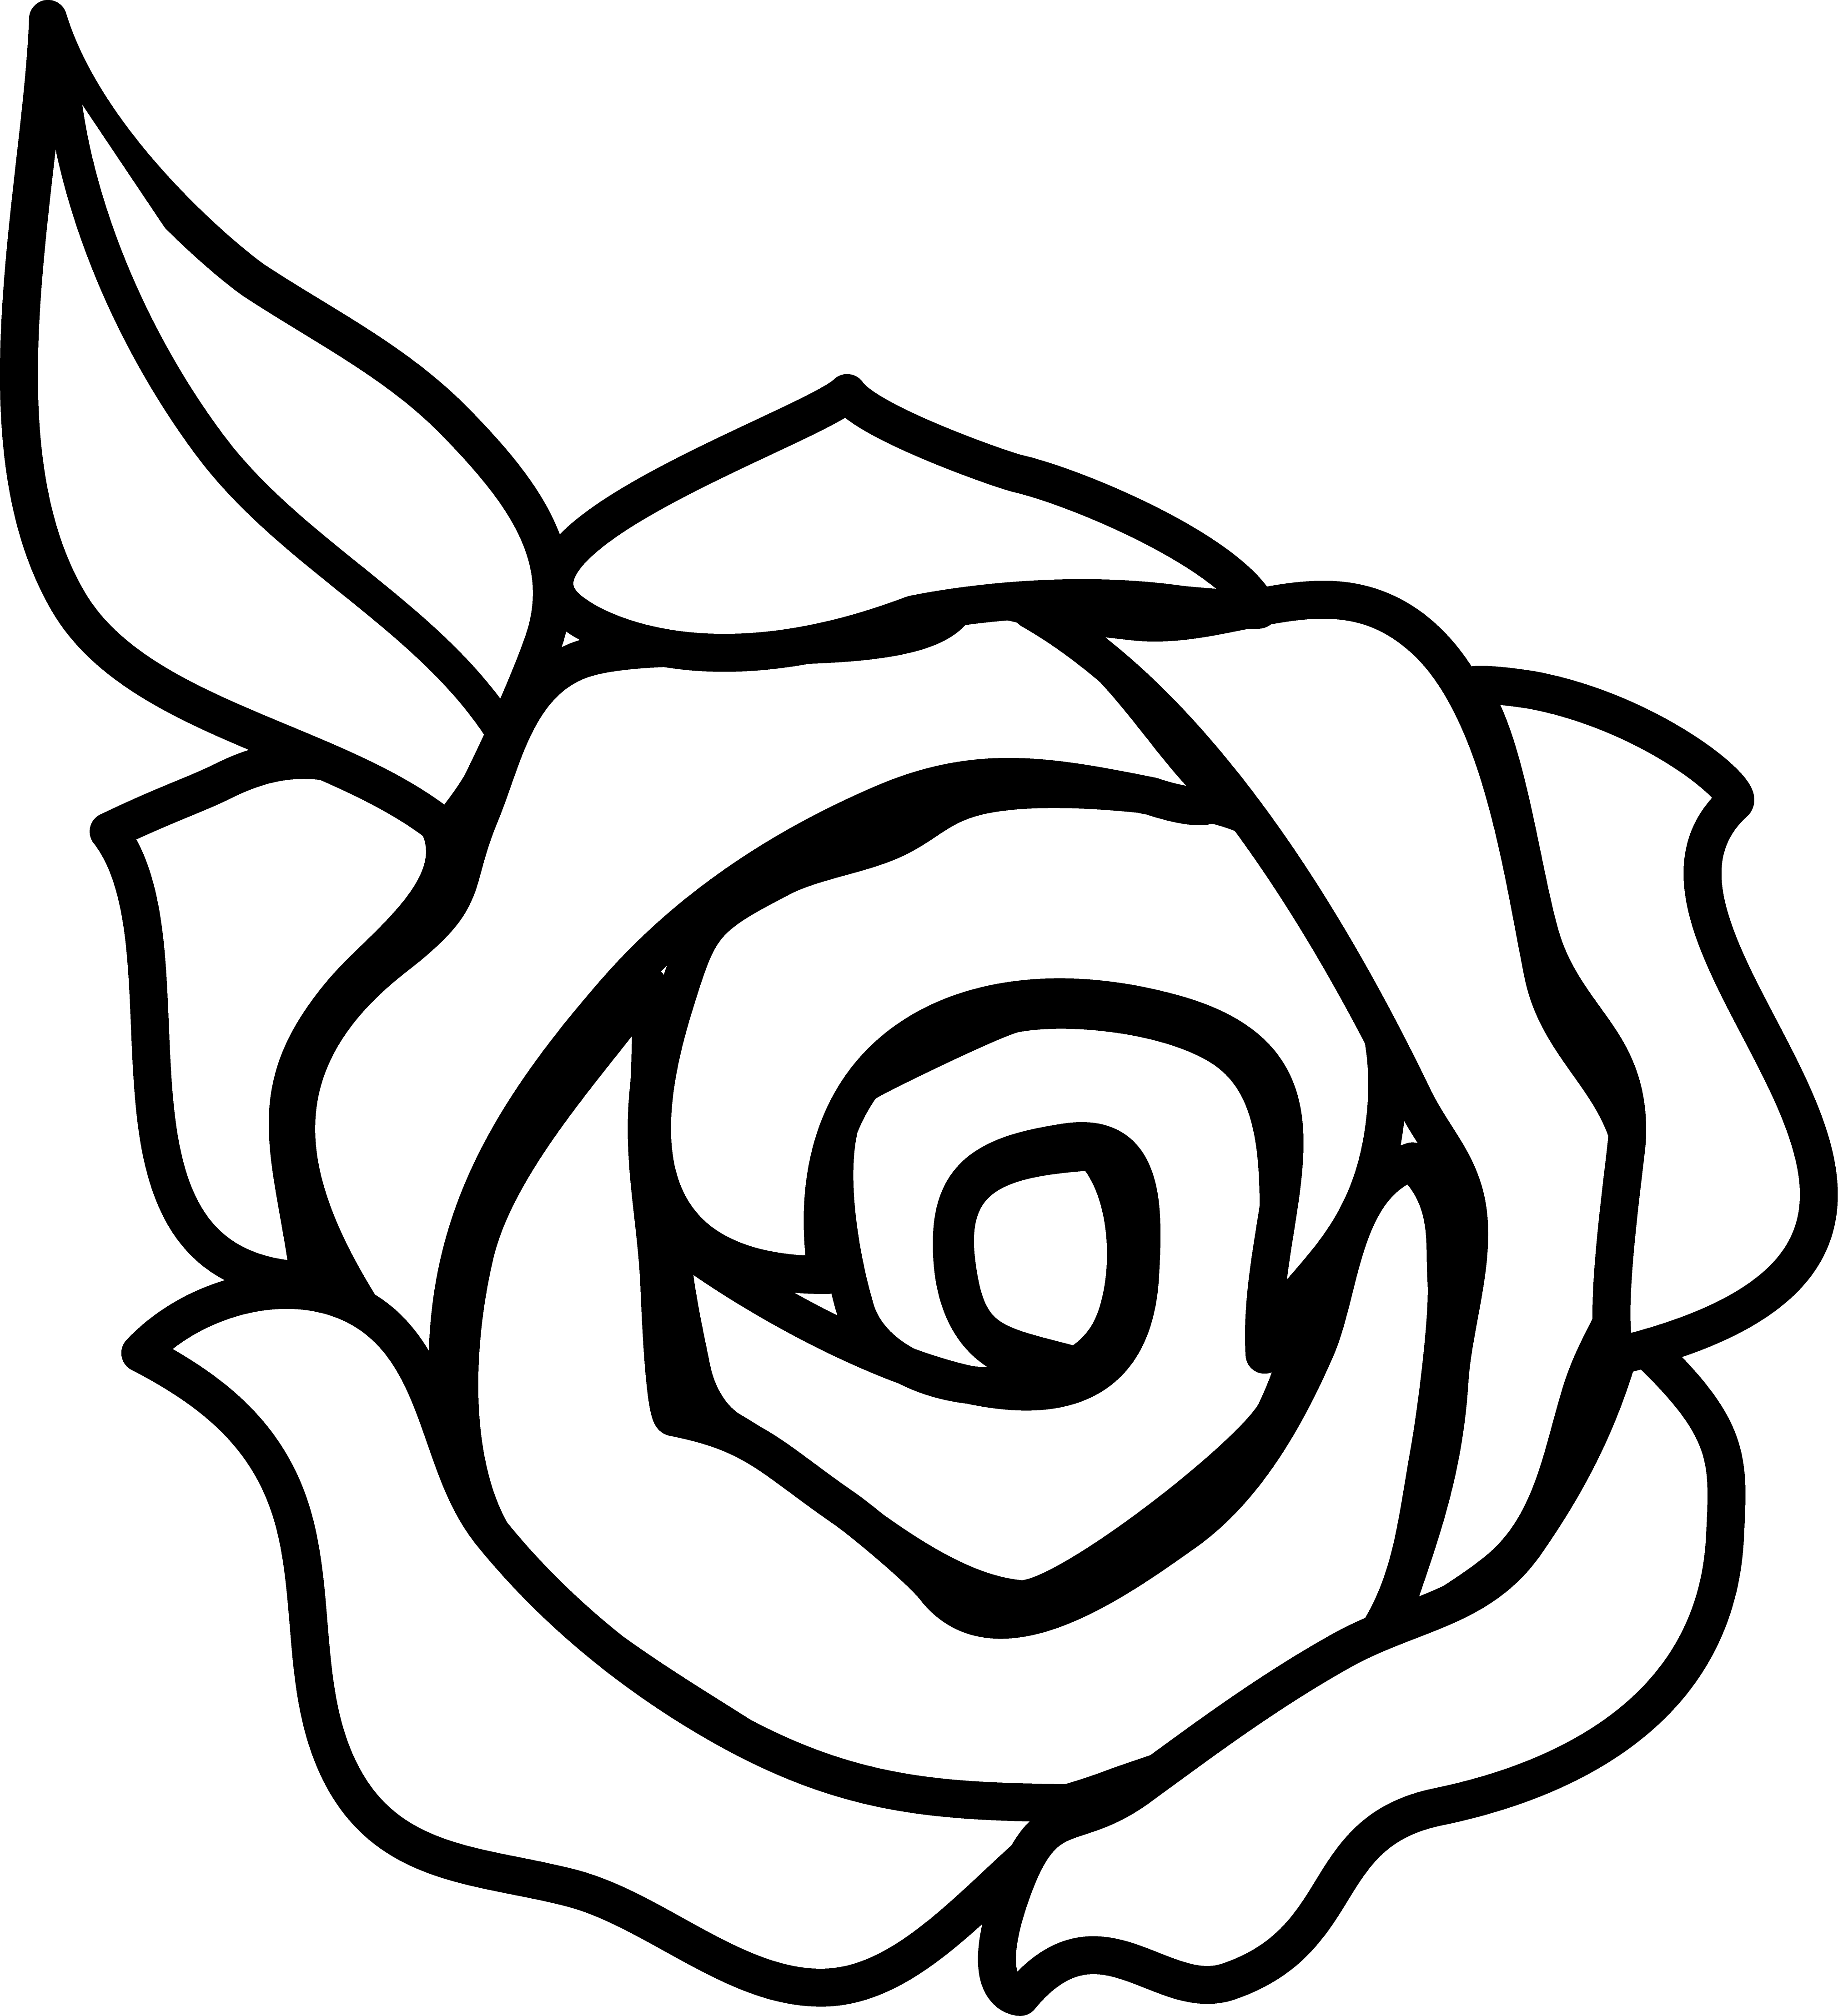 Free Rose Clipart Black And White - ClipArt Best